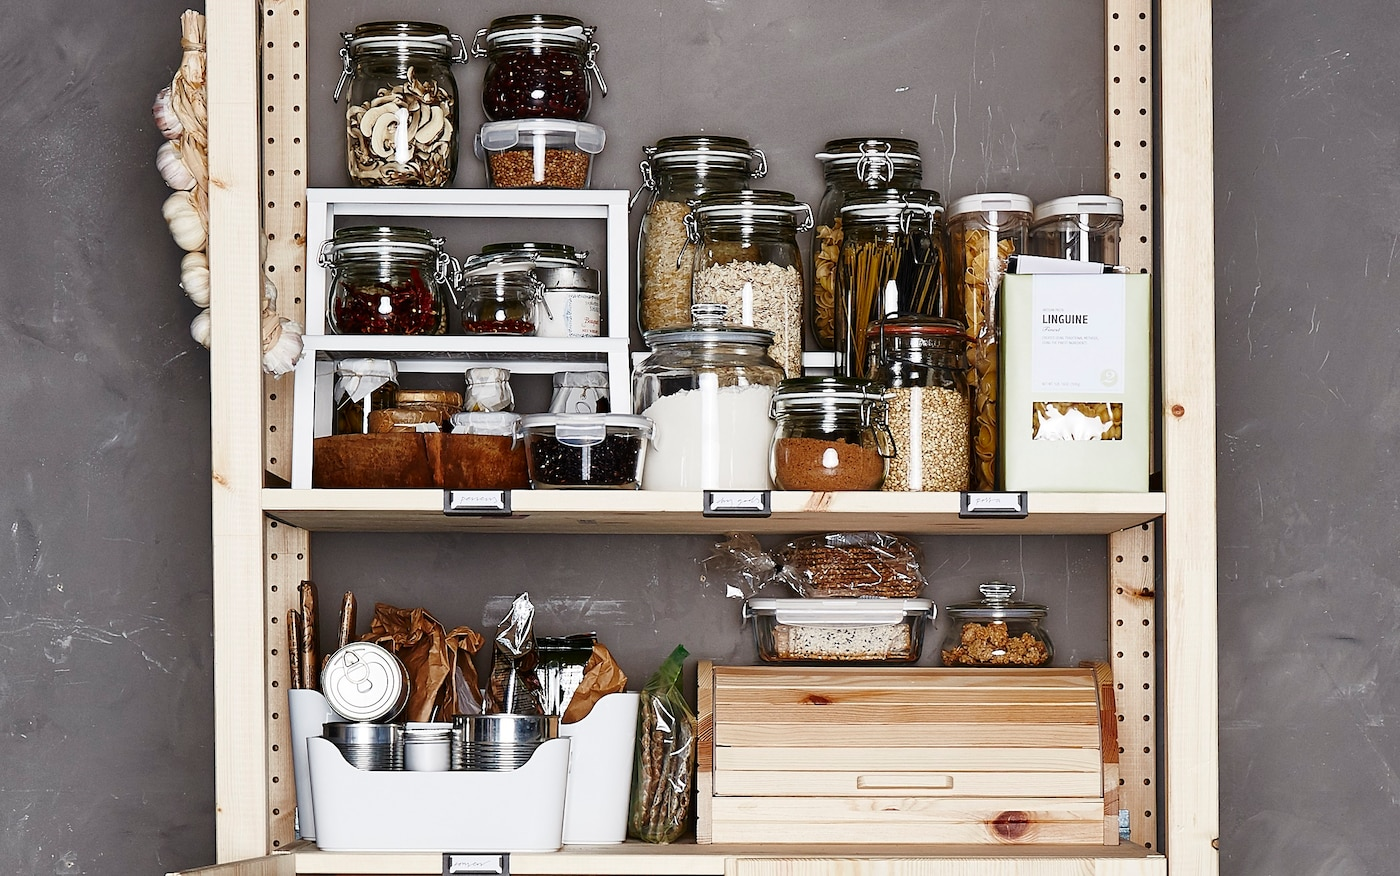 Dry goods are stored in glass jars.